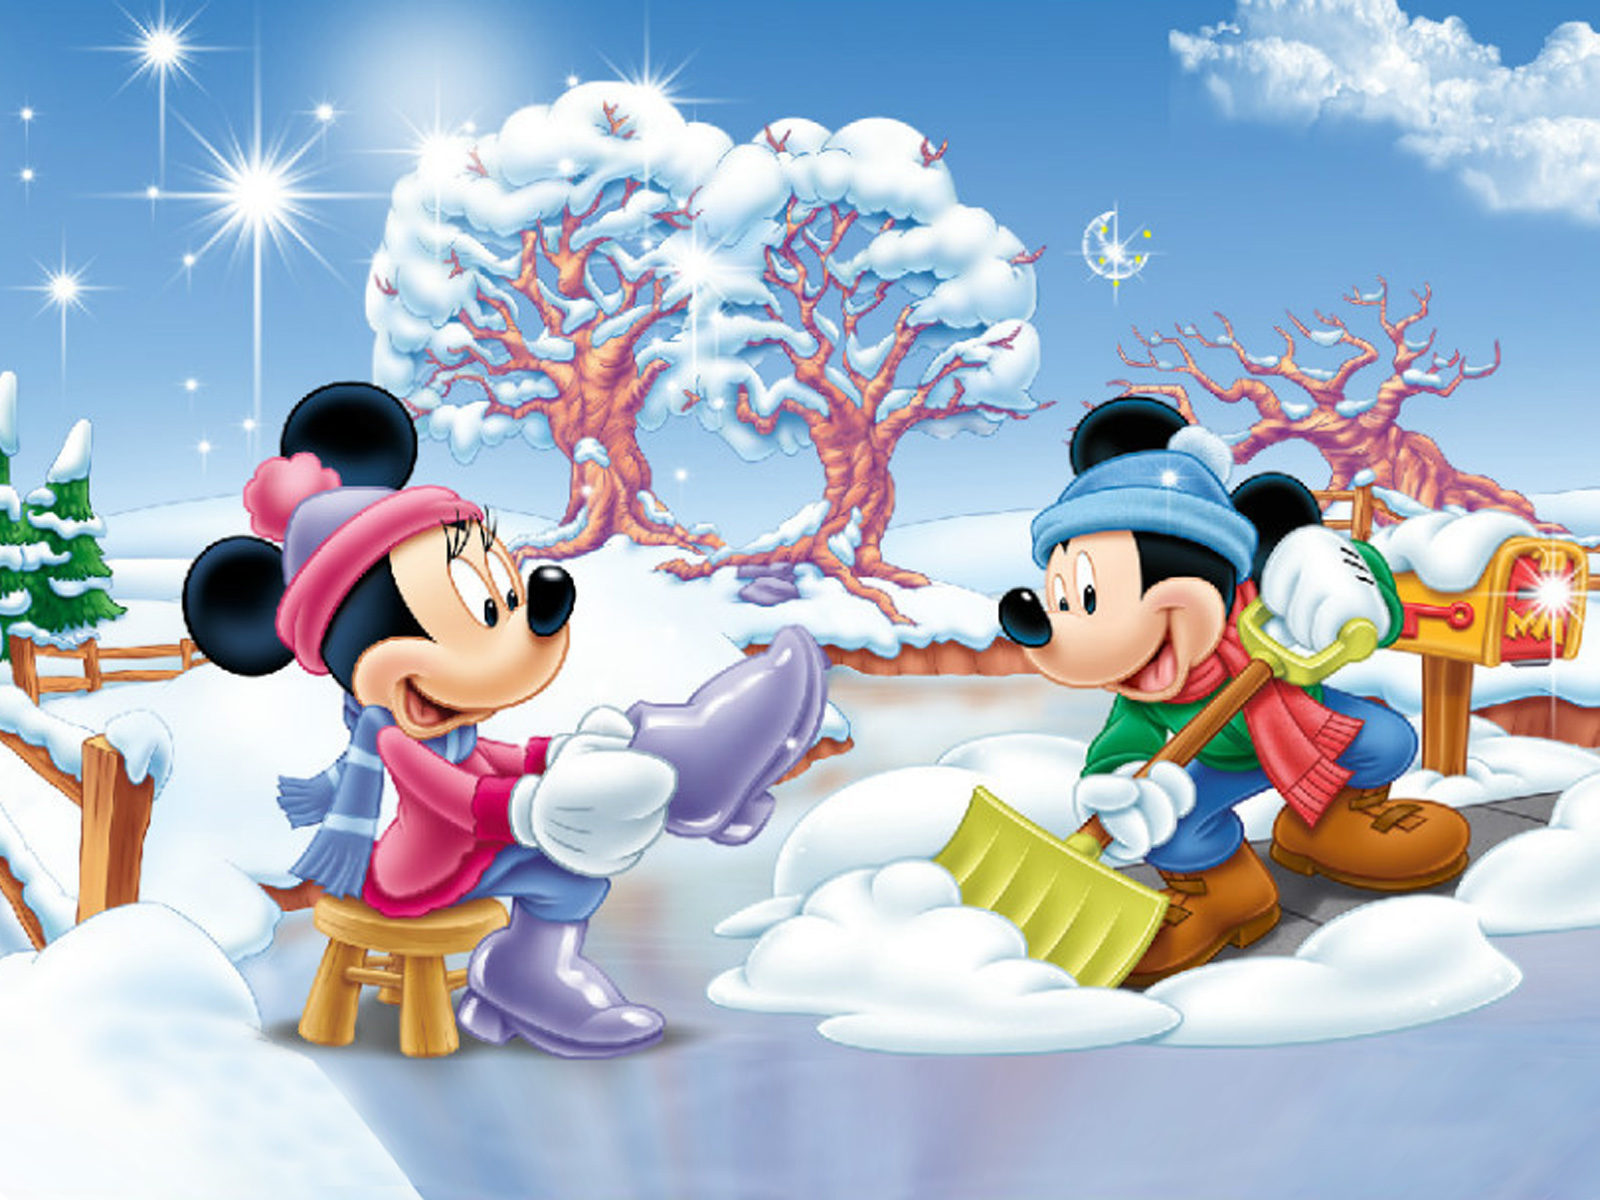 Baby Animals Hd Wallpapers Minnie And Mickey Mouse Winter Snow Fence Yard Blue Sky